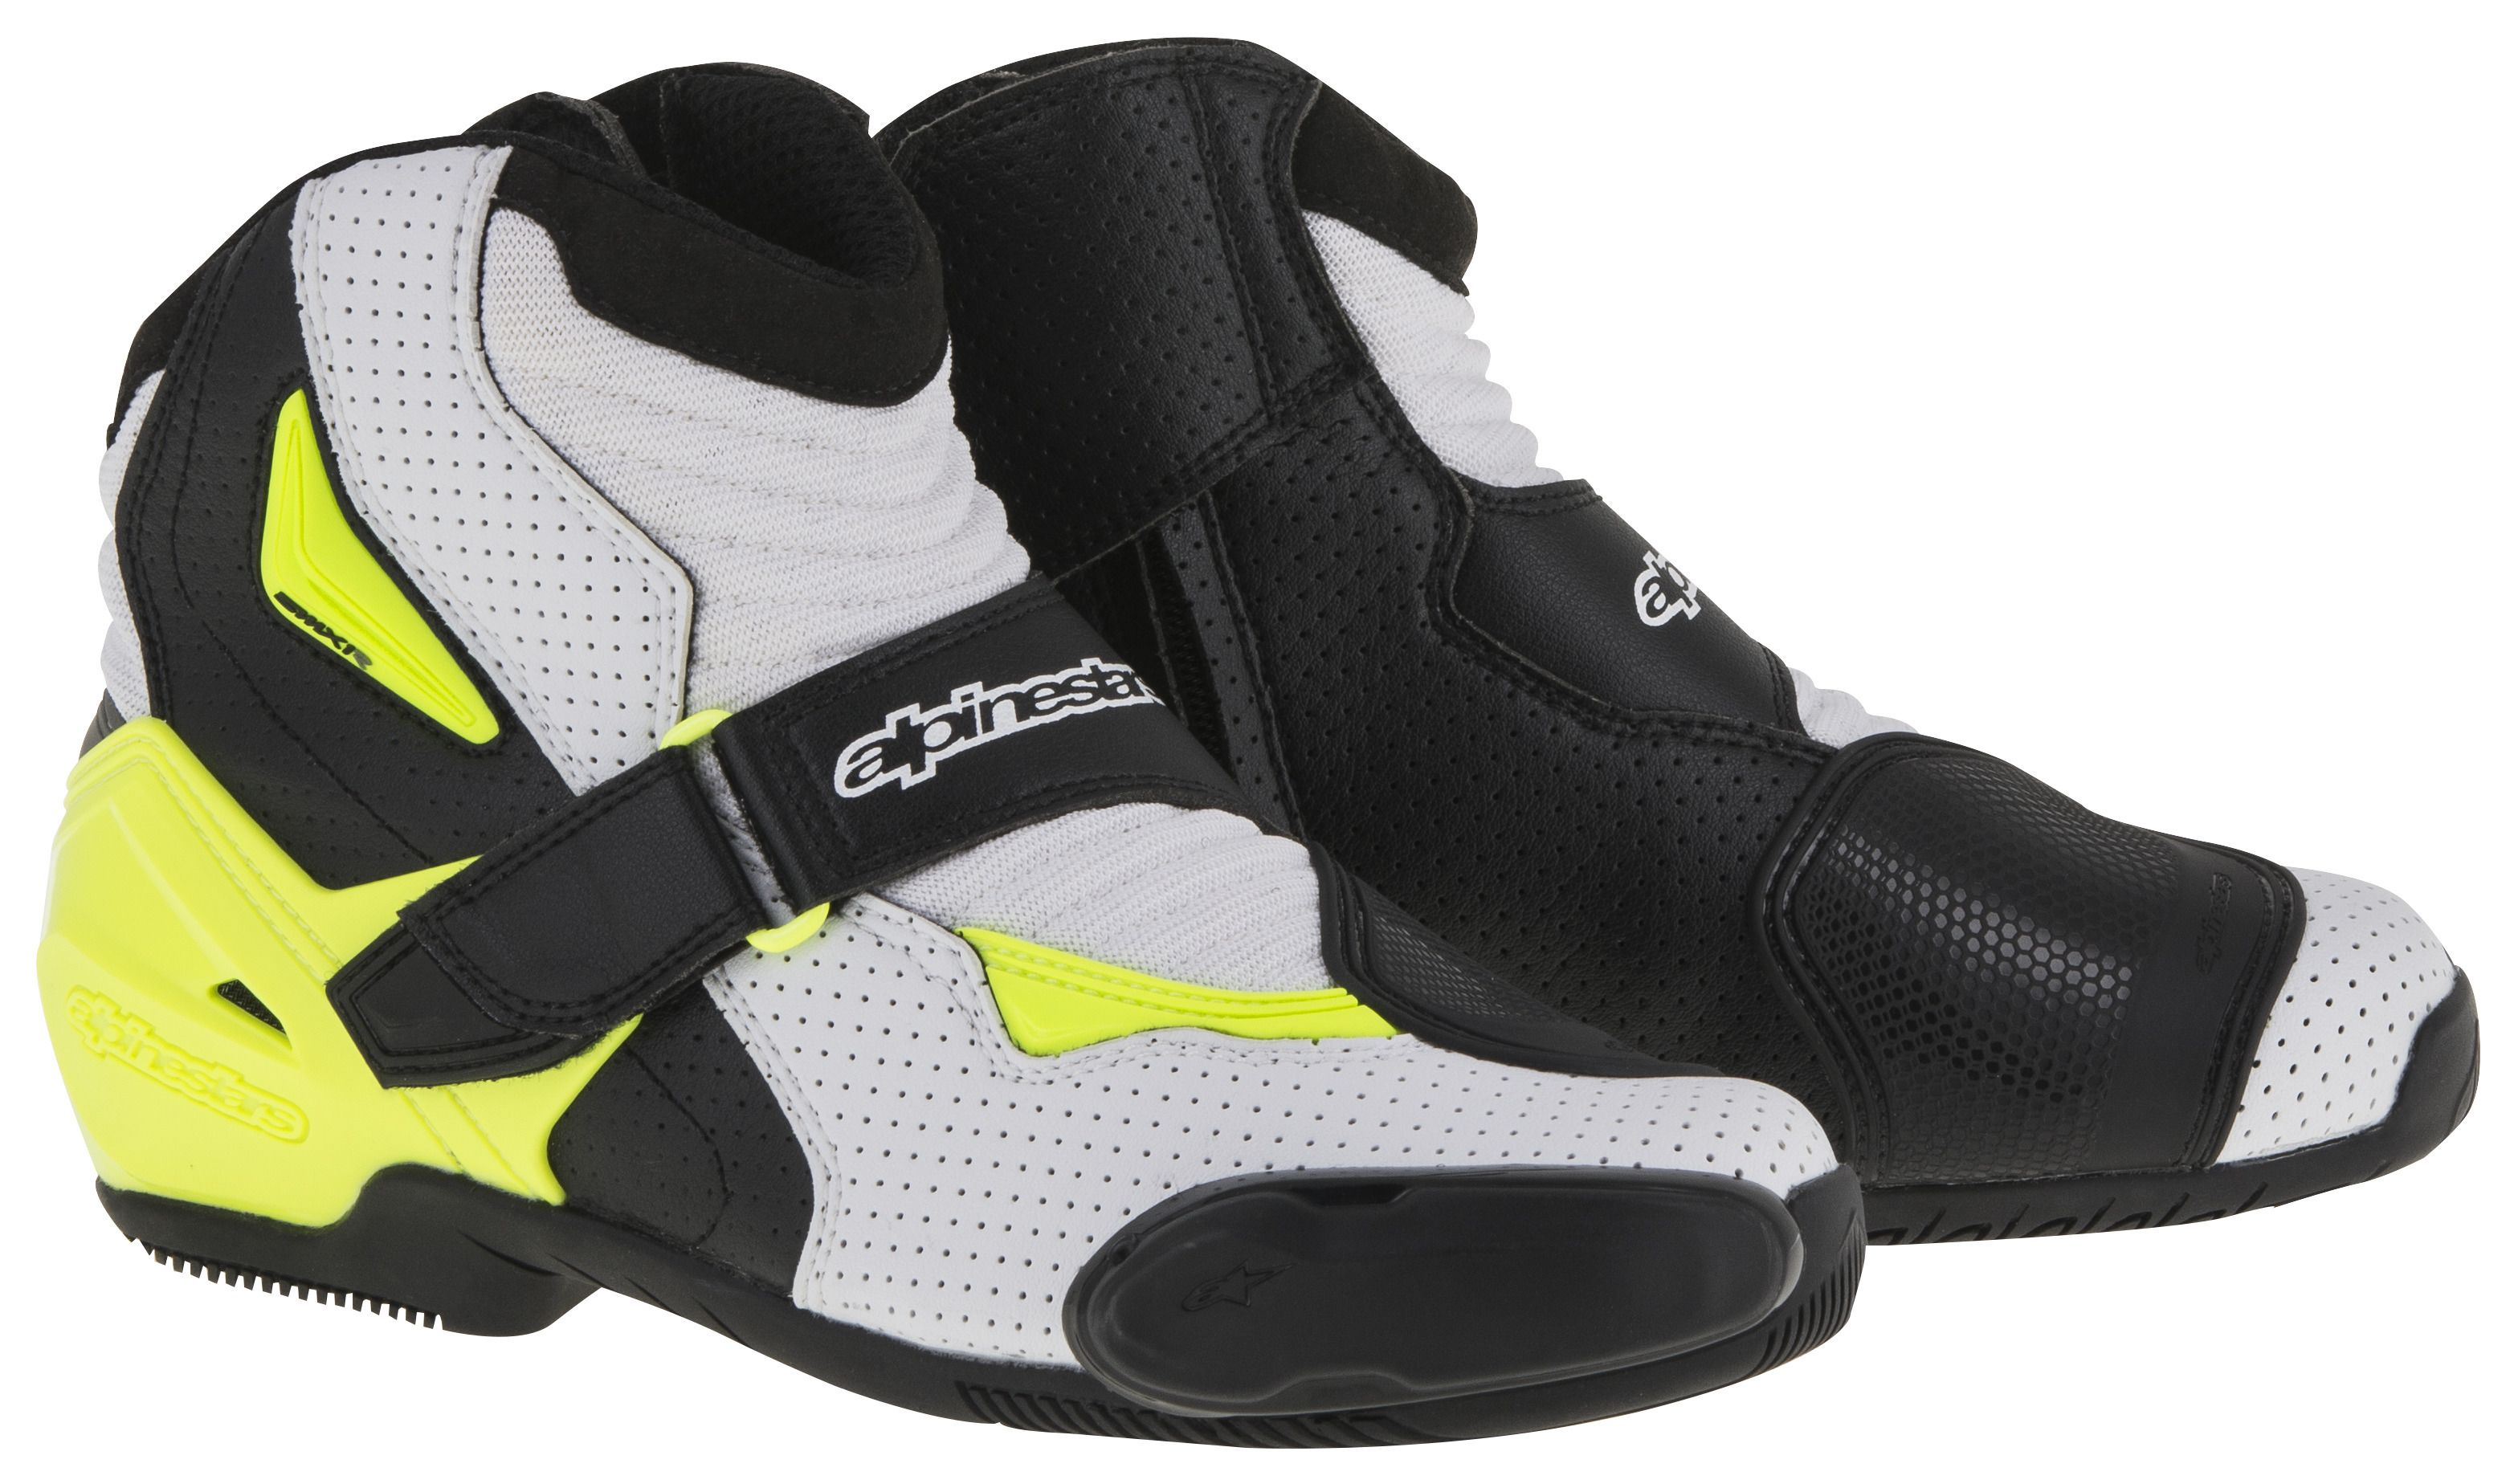 df87a23aca Alpinestars SMX-1 R Vented Boots - Cycle Gear